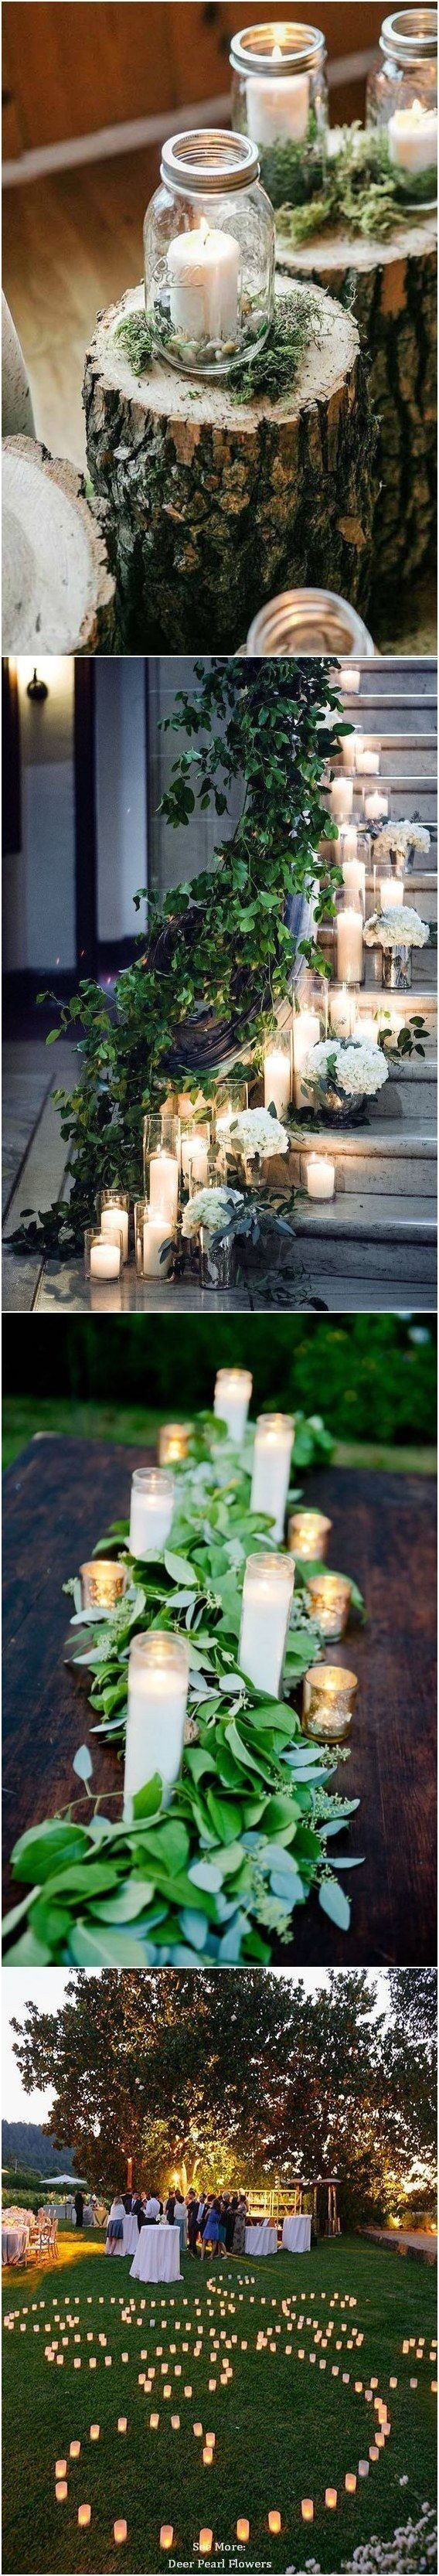 best Wedding Planning Inspiration images on Pinterest  Wedding